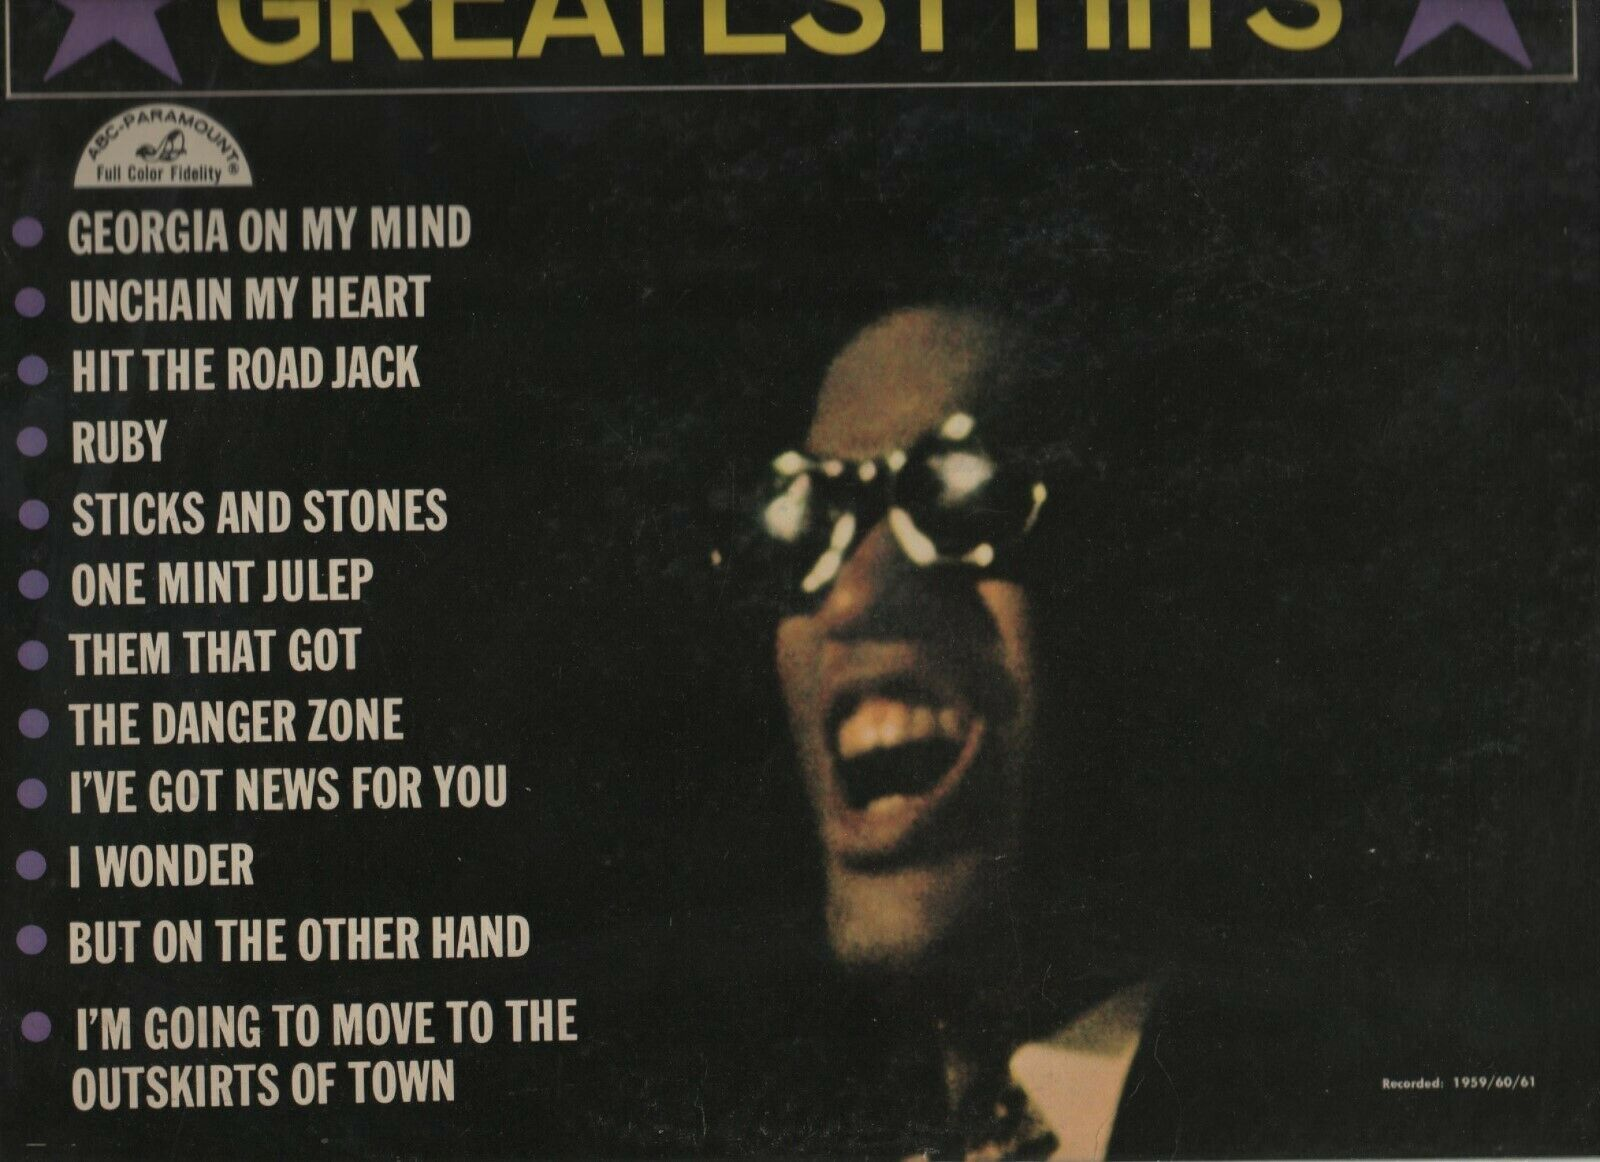 Ray Charles Greatest Hits - ABCS 415 - ABC Paramount - 1961 image 2